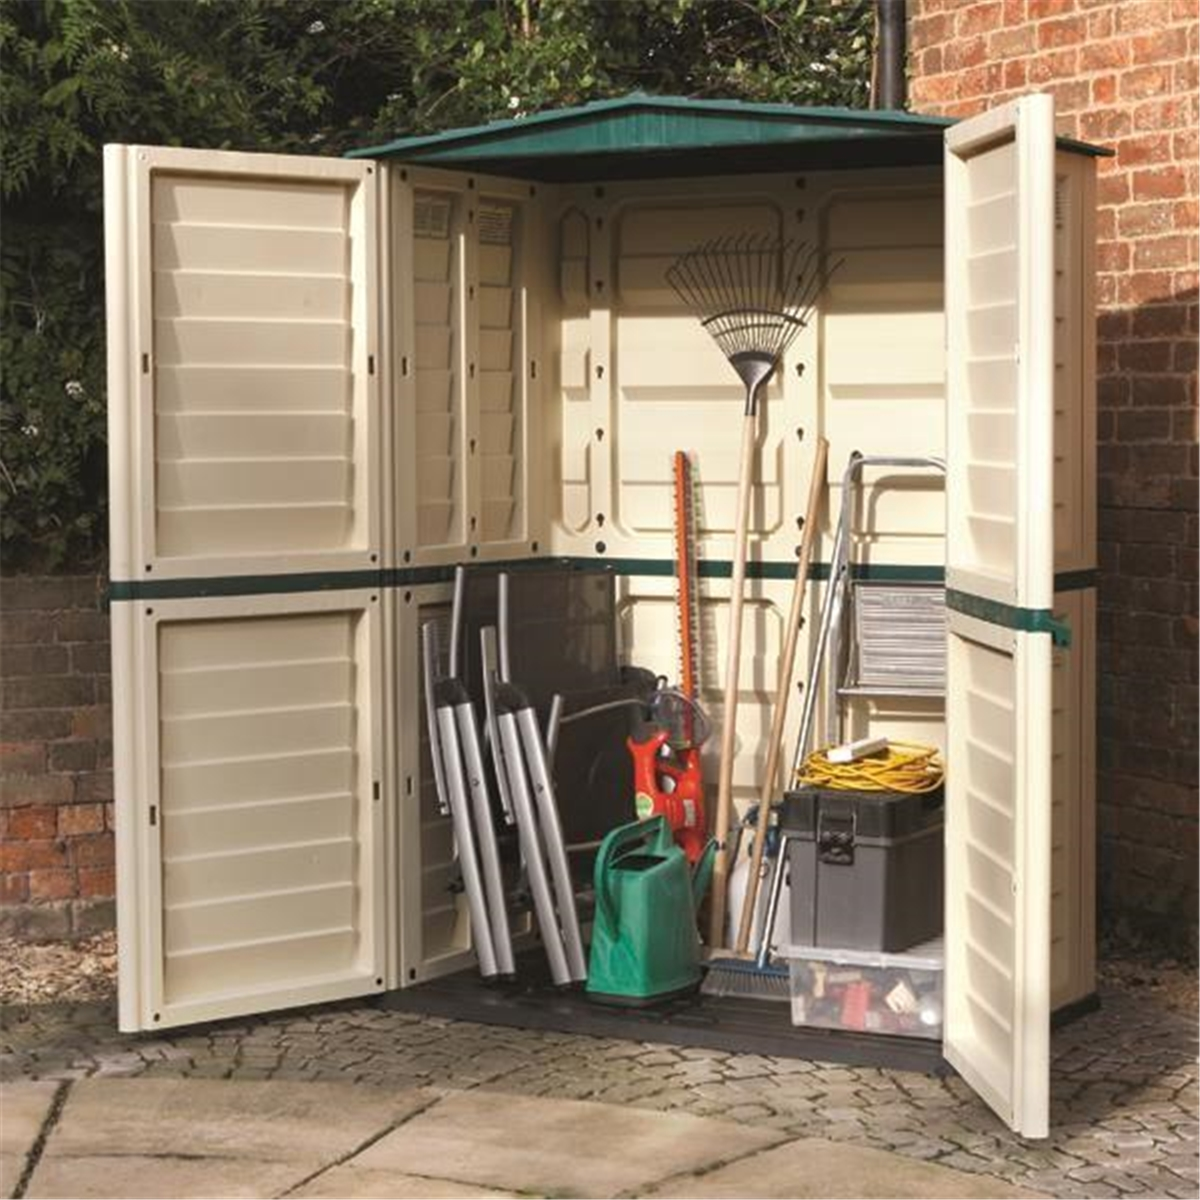 Rubbermaid Storage Shed Lowes | Rubbermaid Sheds | Rubbermaid Large Vertical Storage Shed